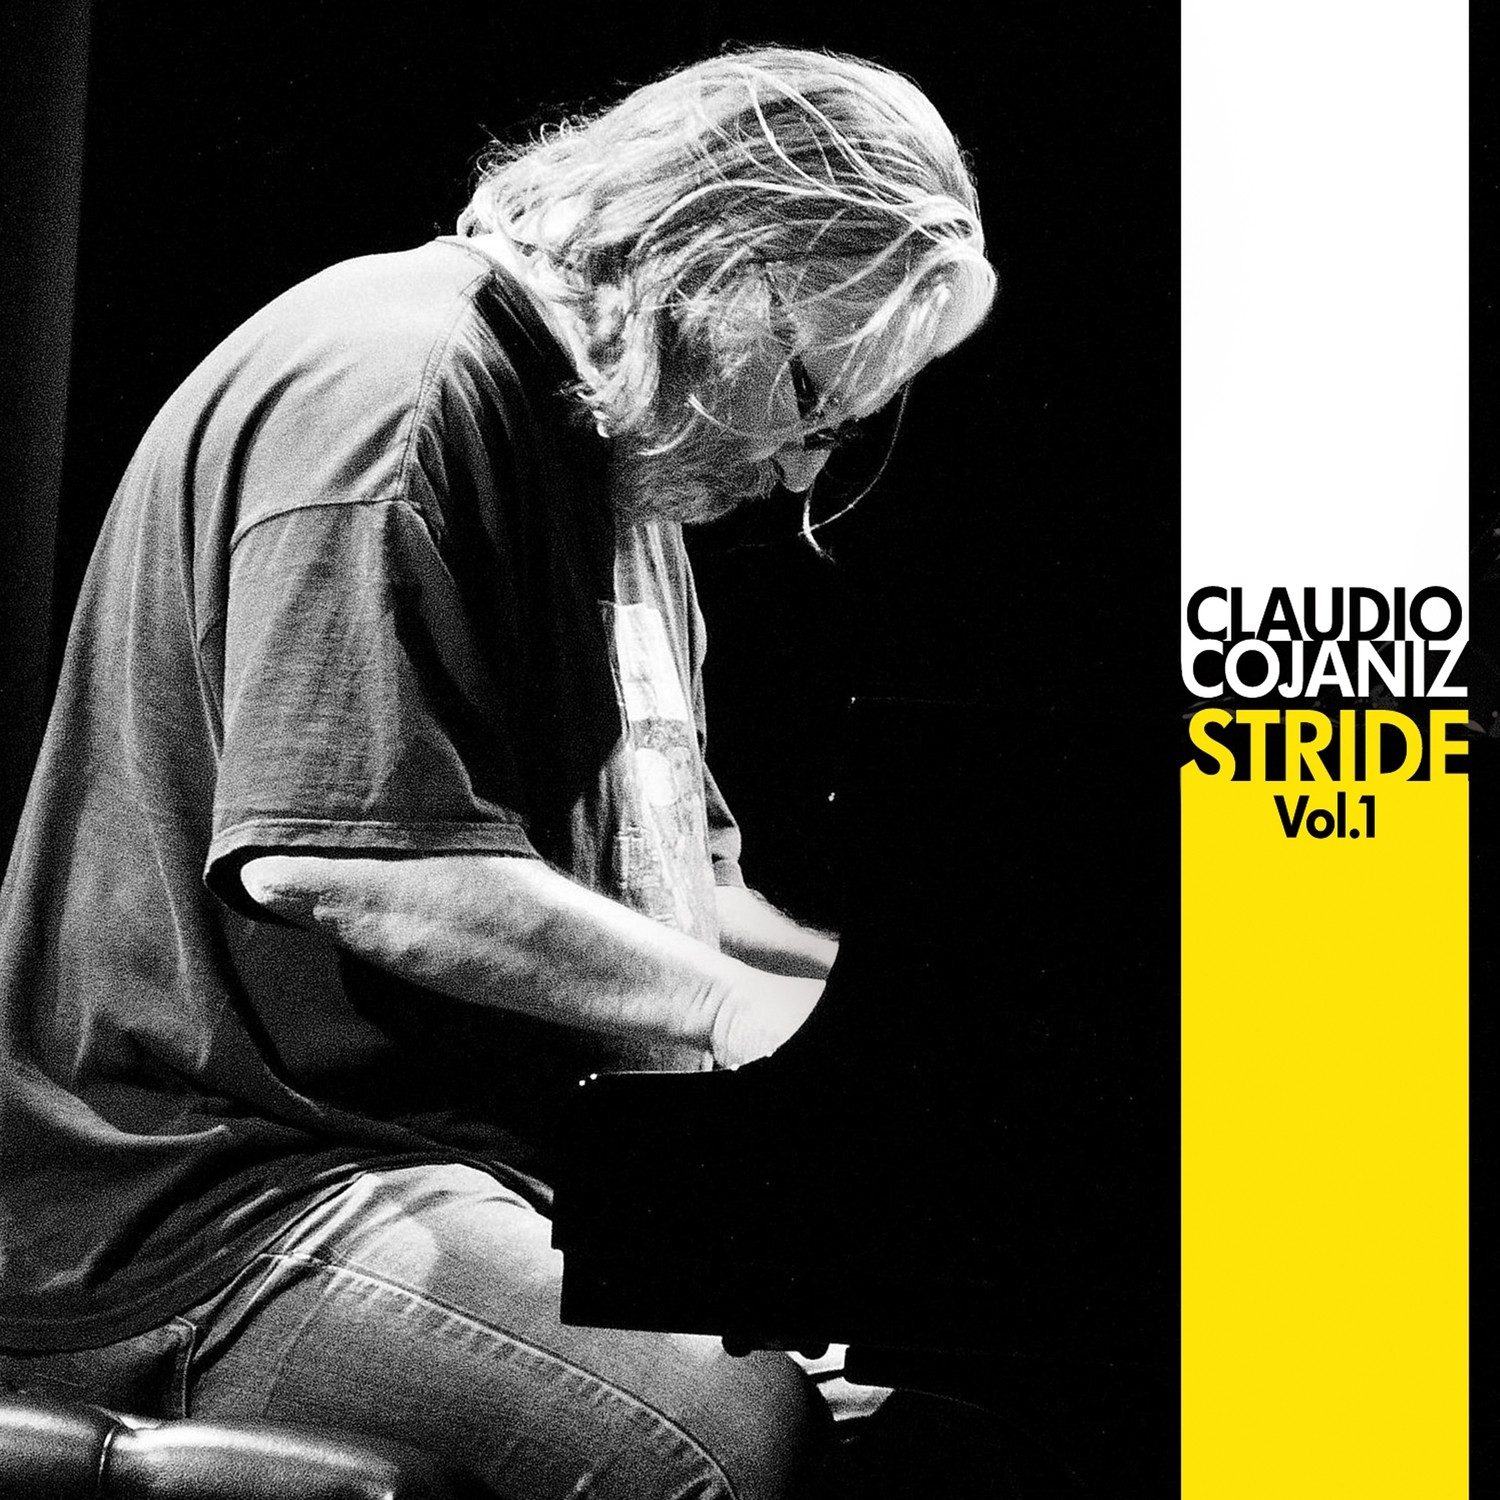 CLAUDIO COJANIZ   «Stride Vol. 1»